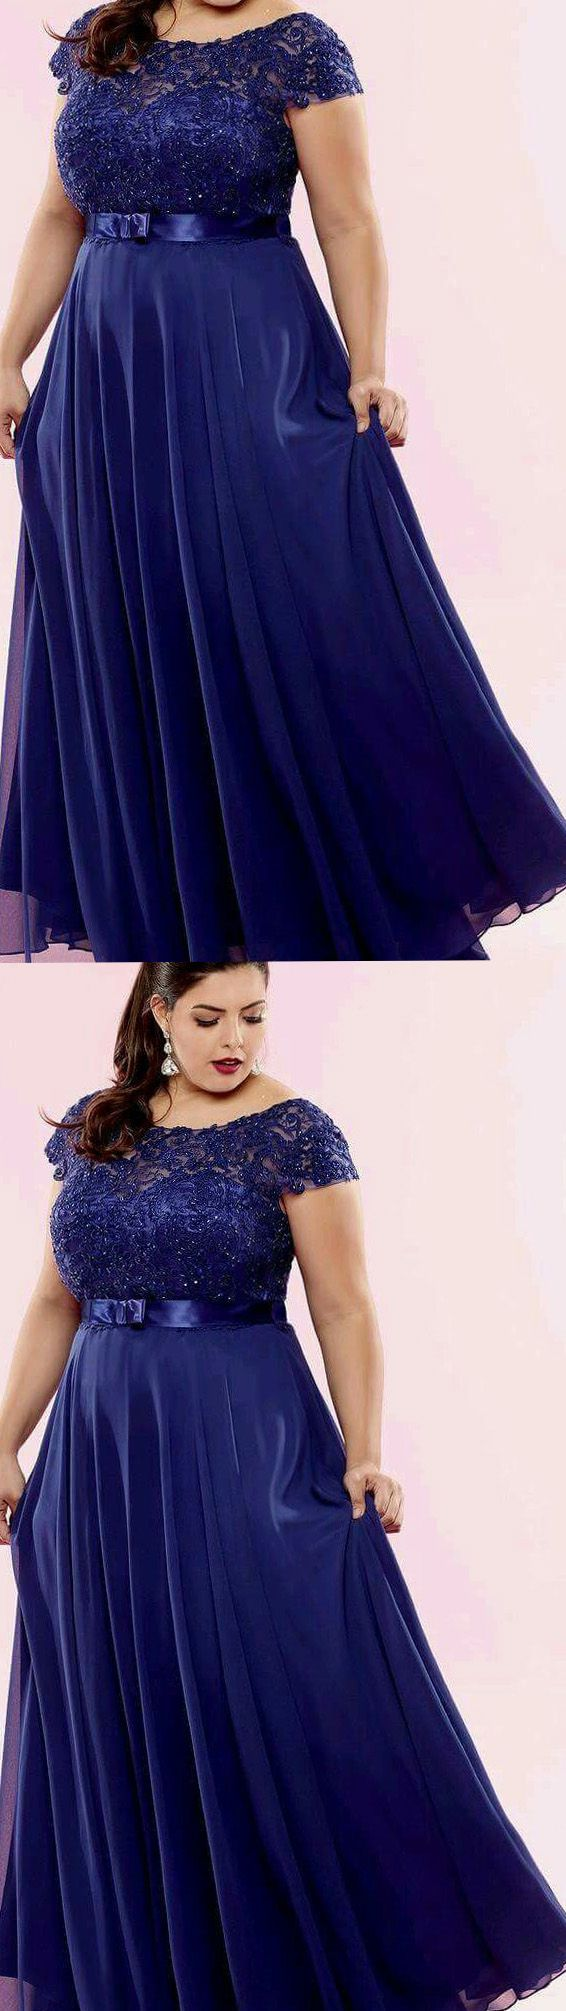 Plus Size Prom Dresses, Blue Prom Dresses, Long Prom Dresses, Royal Blue Prom Dresses, Prom Dresses Plus Size, Prom Dresses Blue, Long Blue Prom Dresses, Prom Dresses Royal Blue, Chiffon Prom Dresses, Plus Size Dresses, Royal Blue dresses, Plus Size Prom Dresses Royal Blue Floor-length Chiffon Appliques Prom Dress